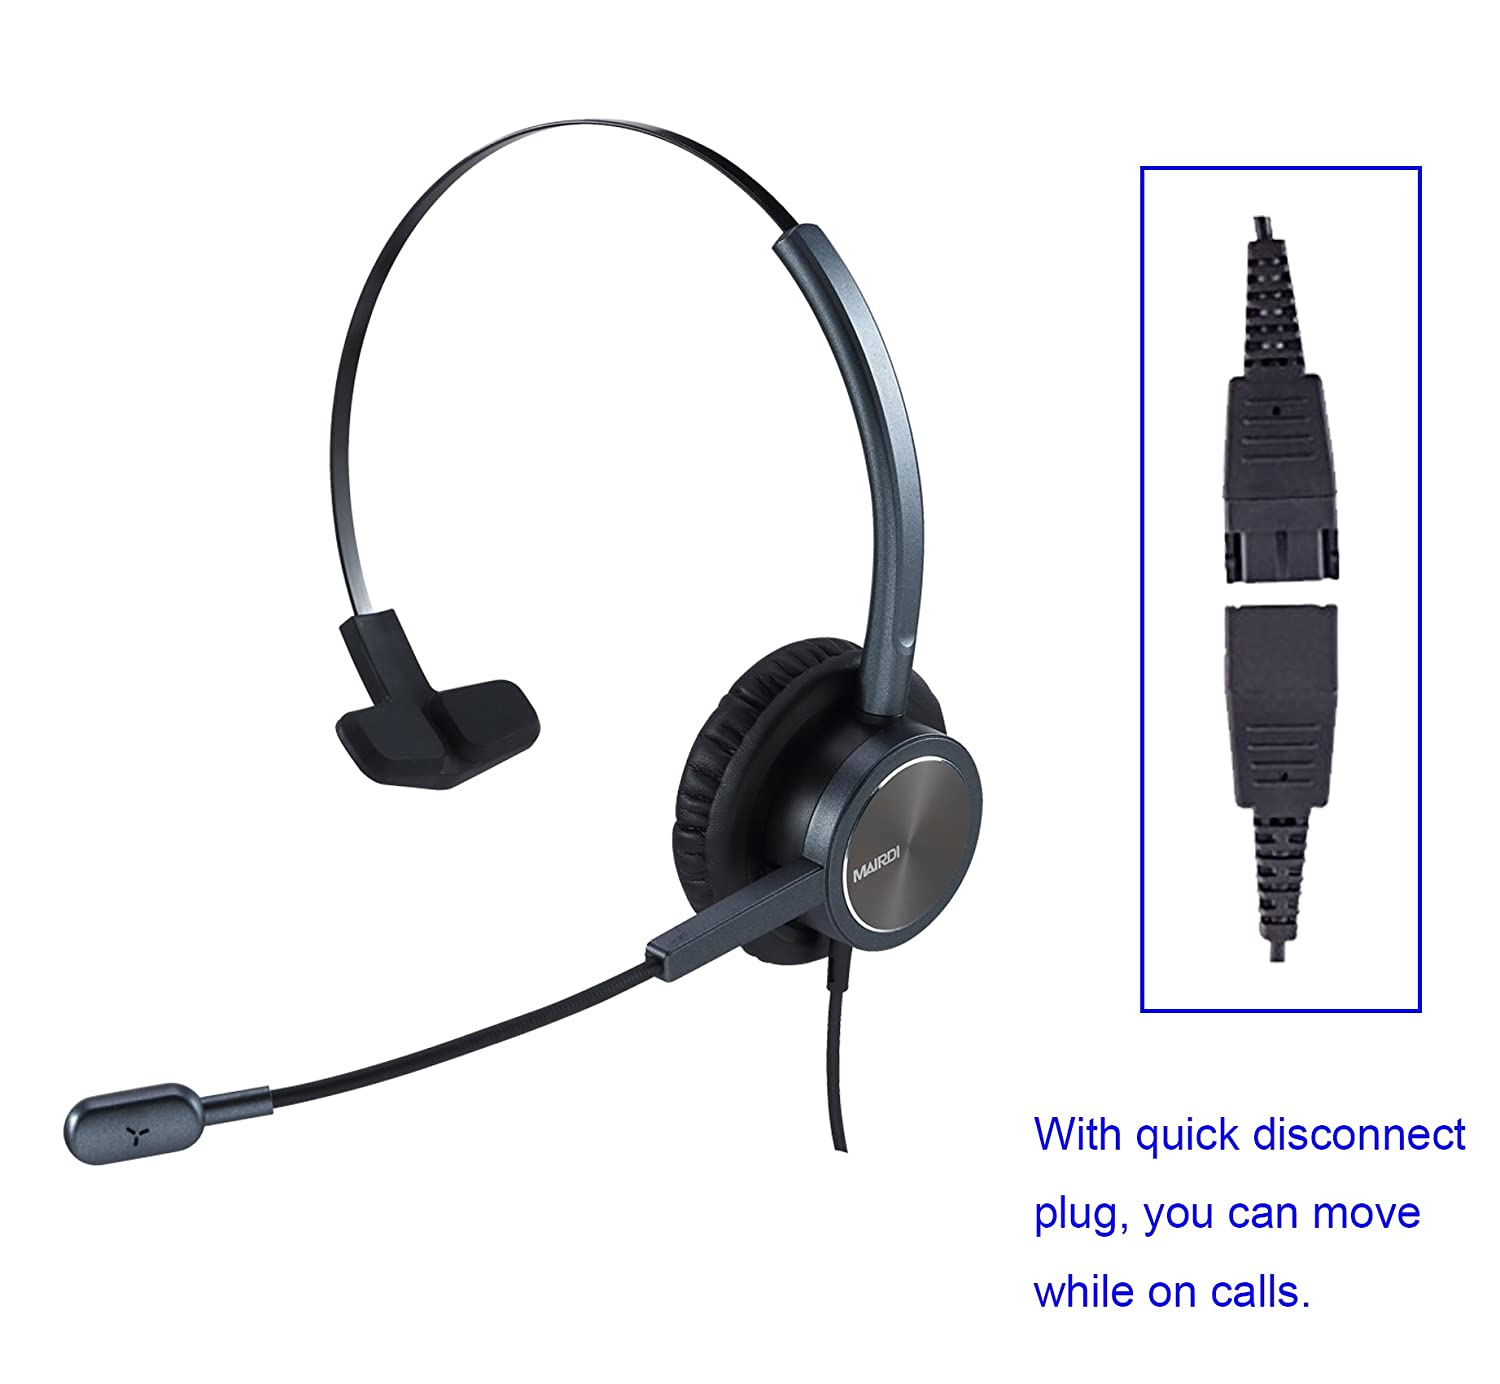 RJ9 Cisco Headset for Telephone With Noise Cancelling Microphone